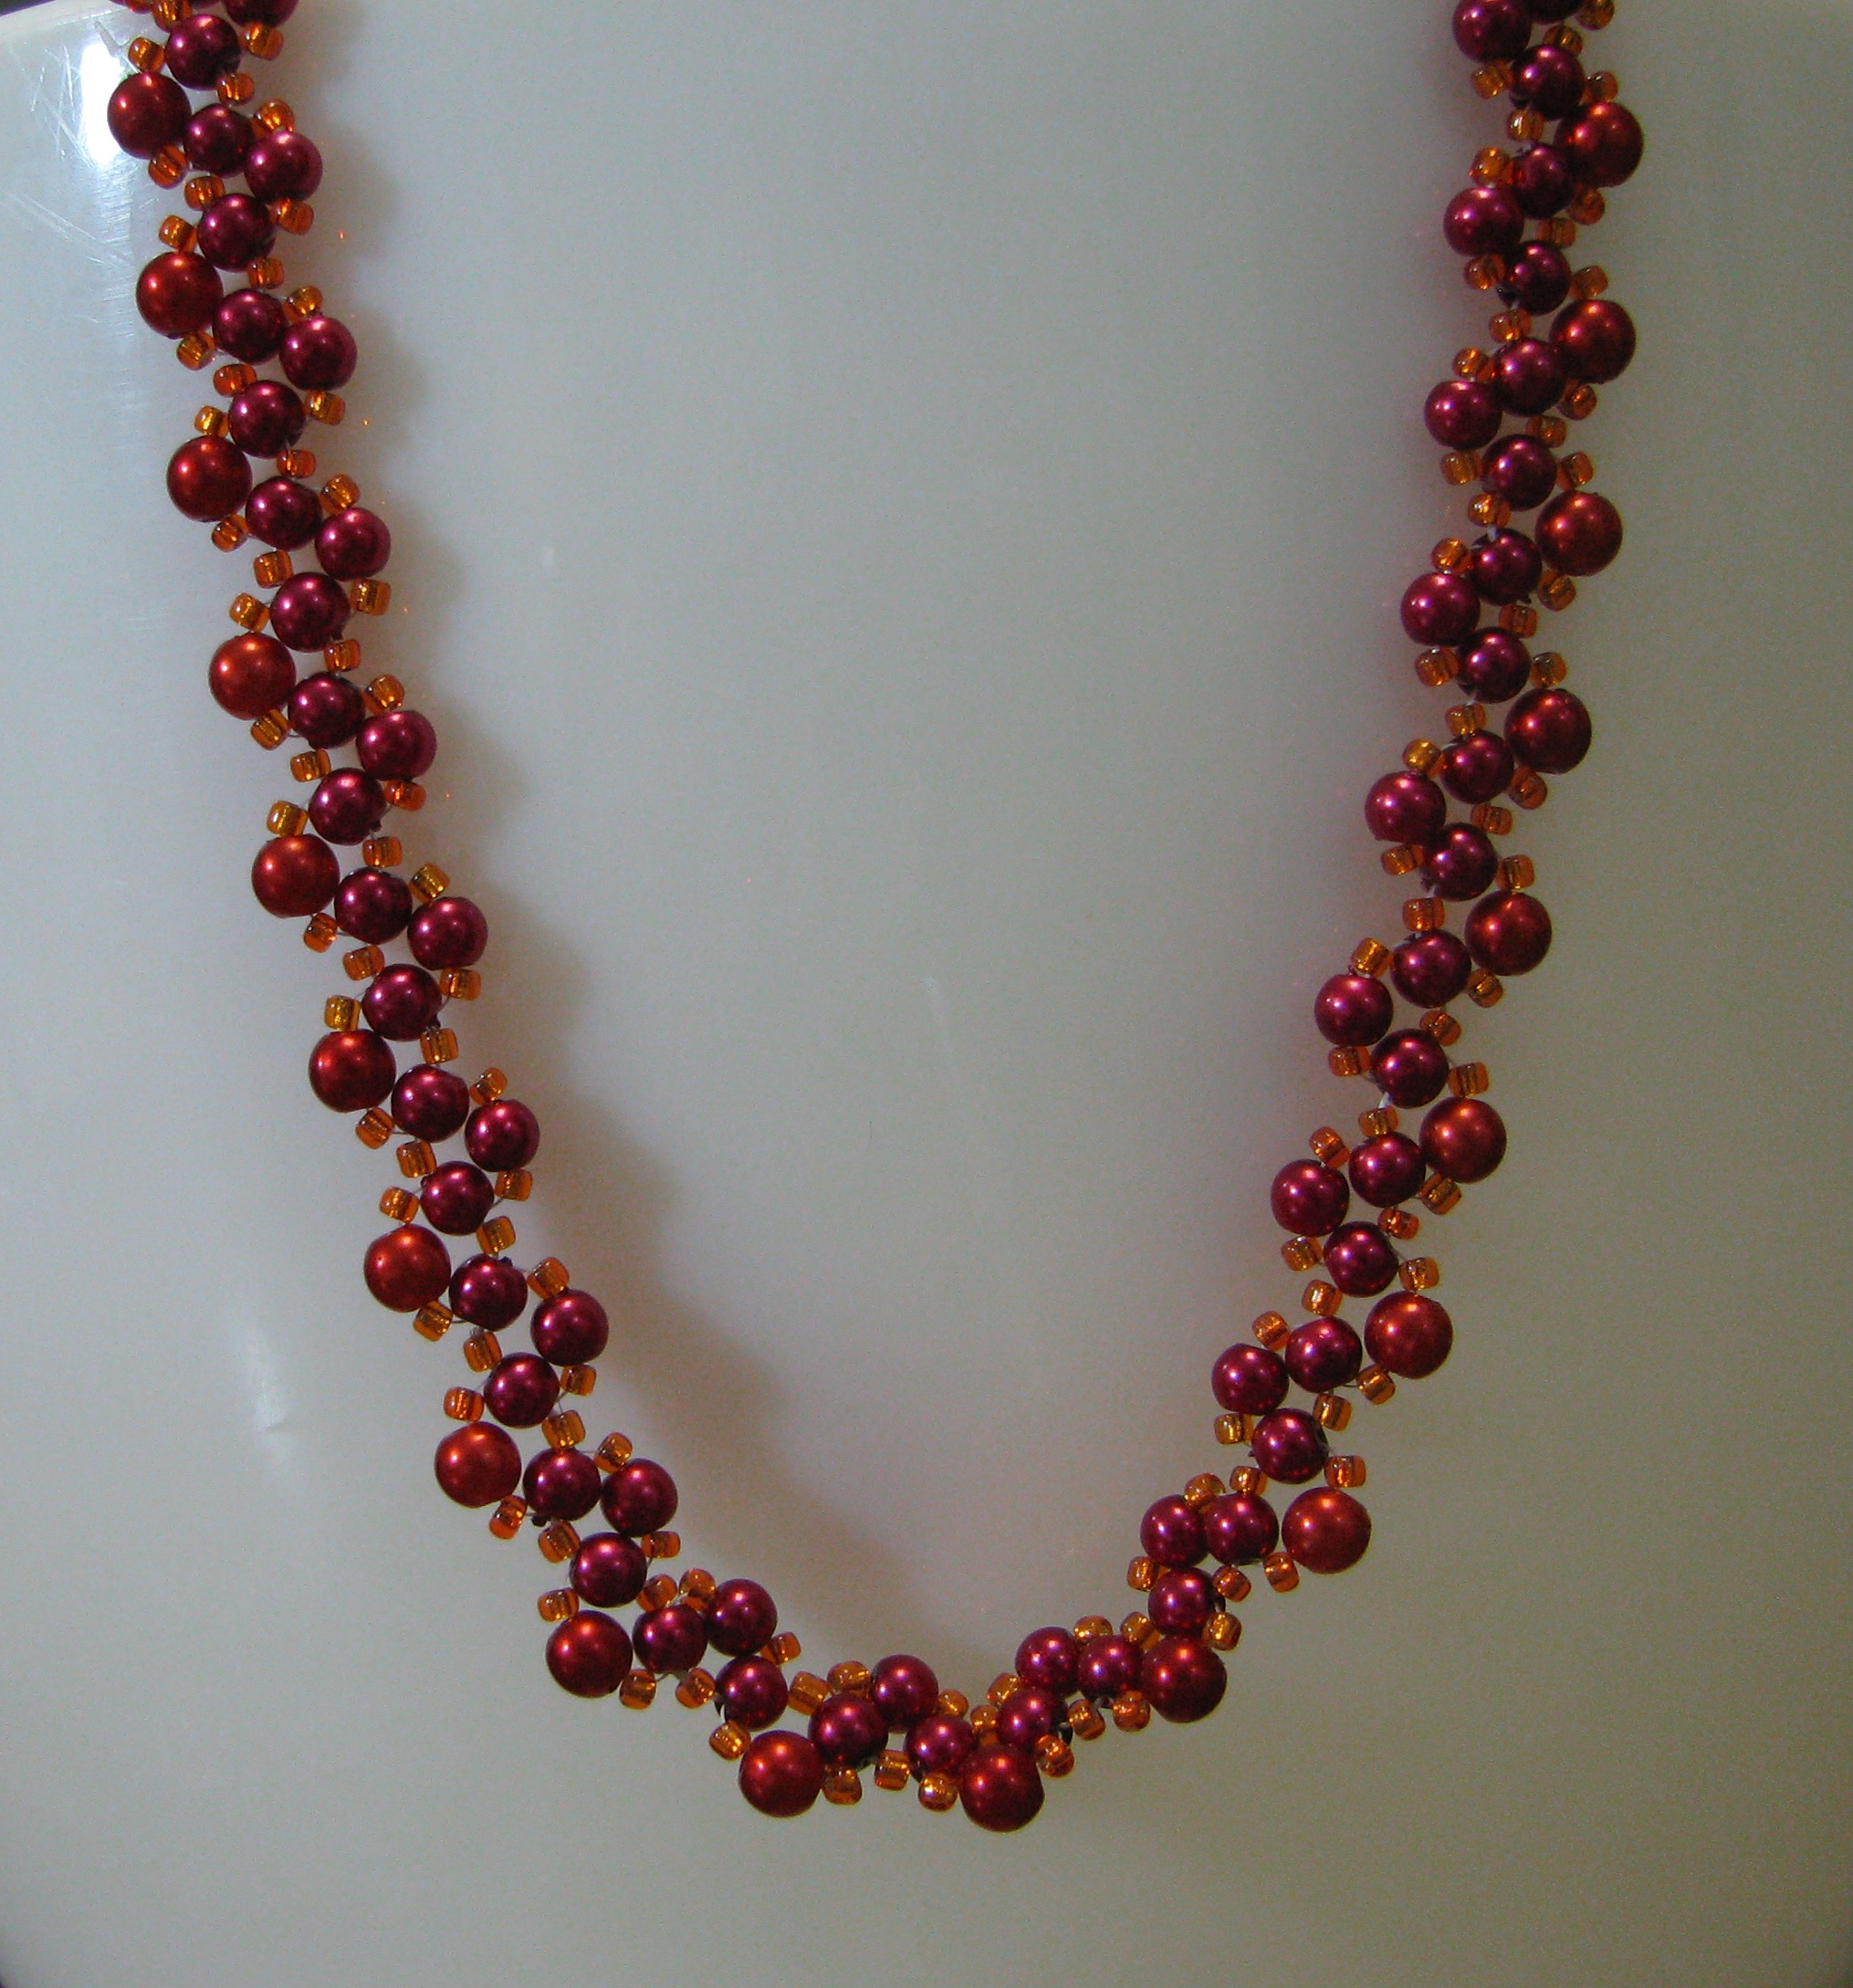 4_necklace_19_img_6538